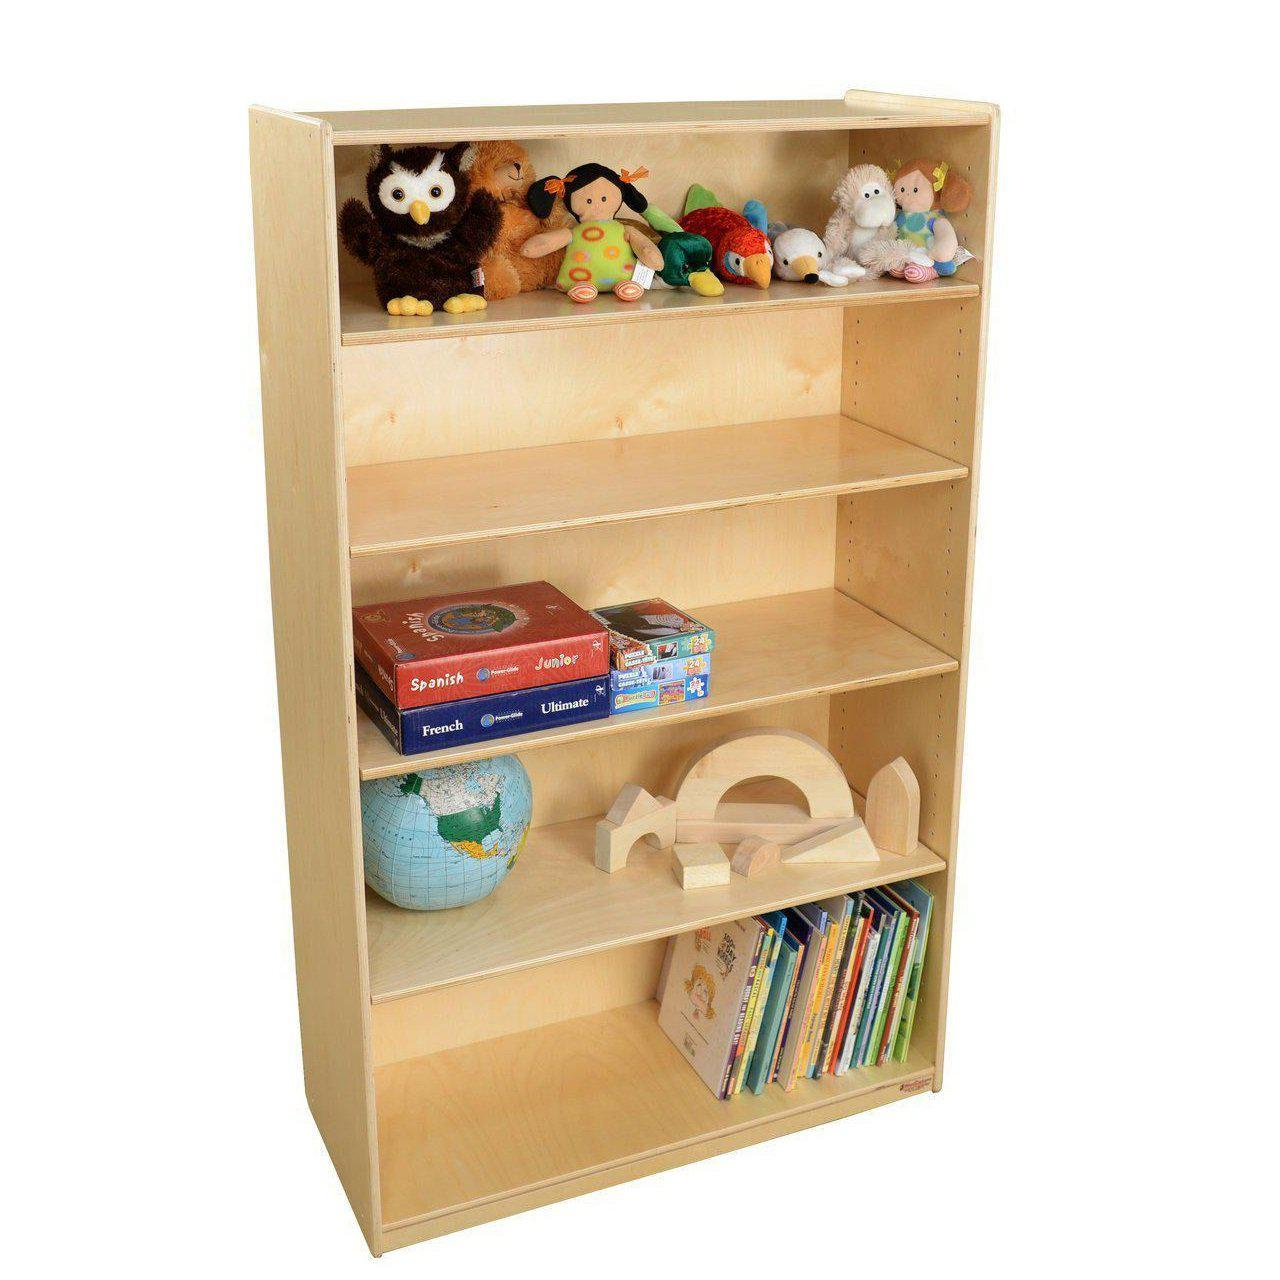 "Wood Designs Bookshelf, 59-1/2""H"